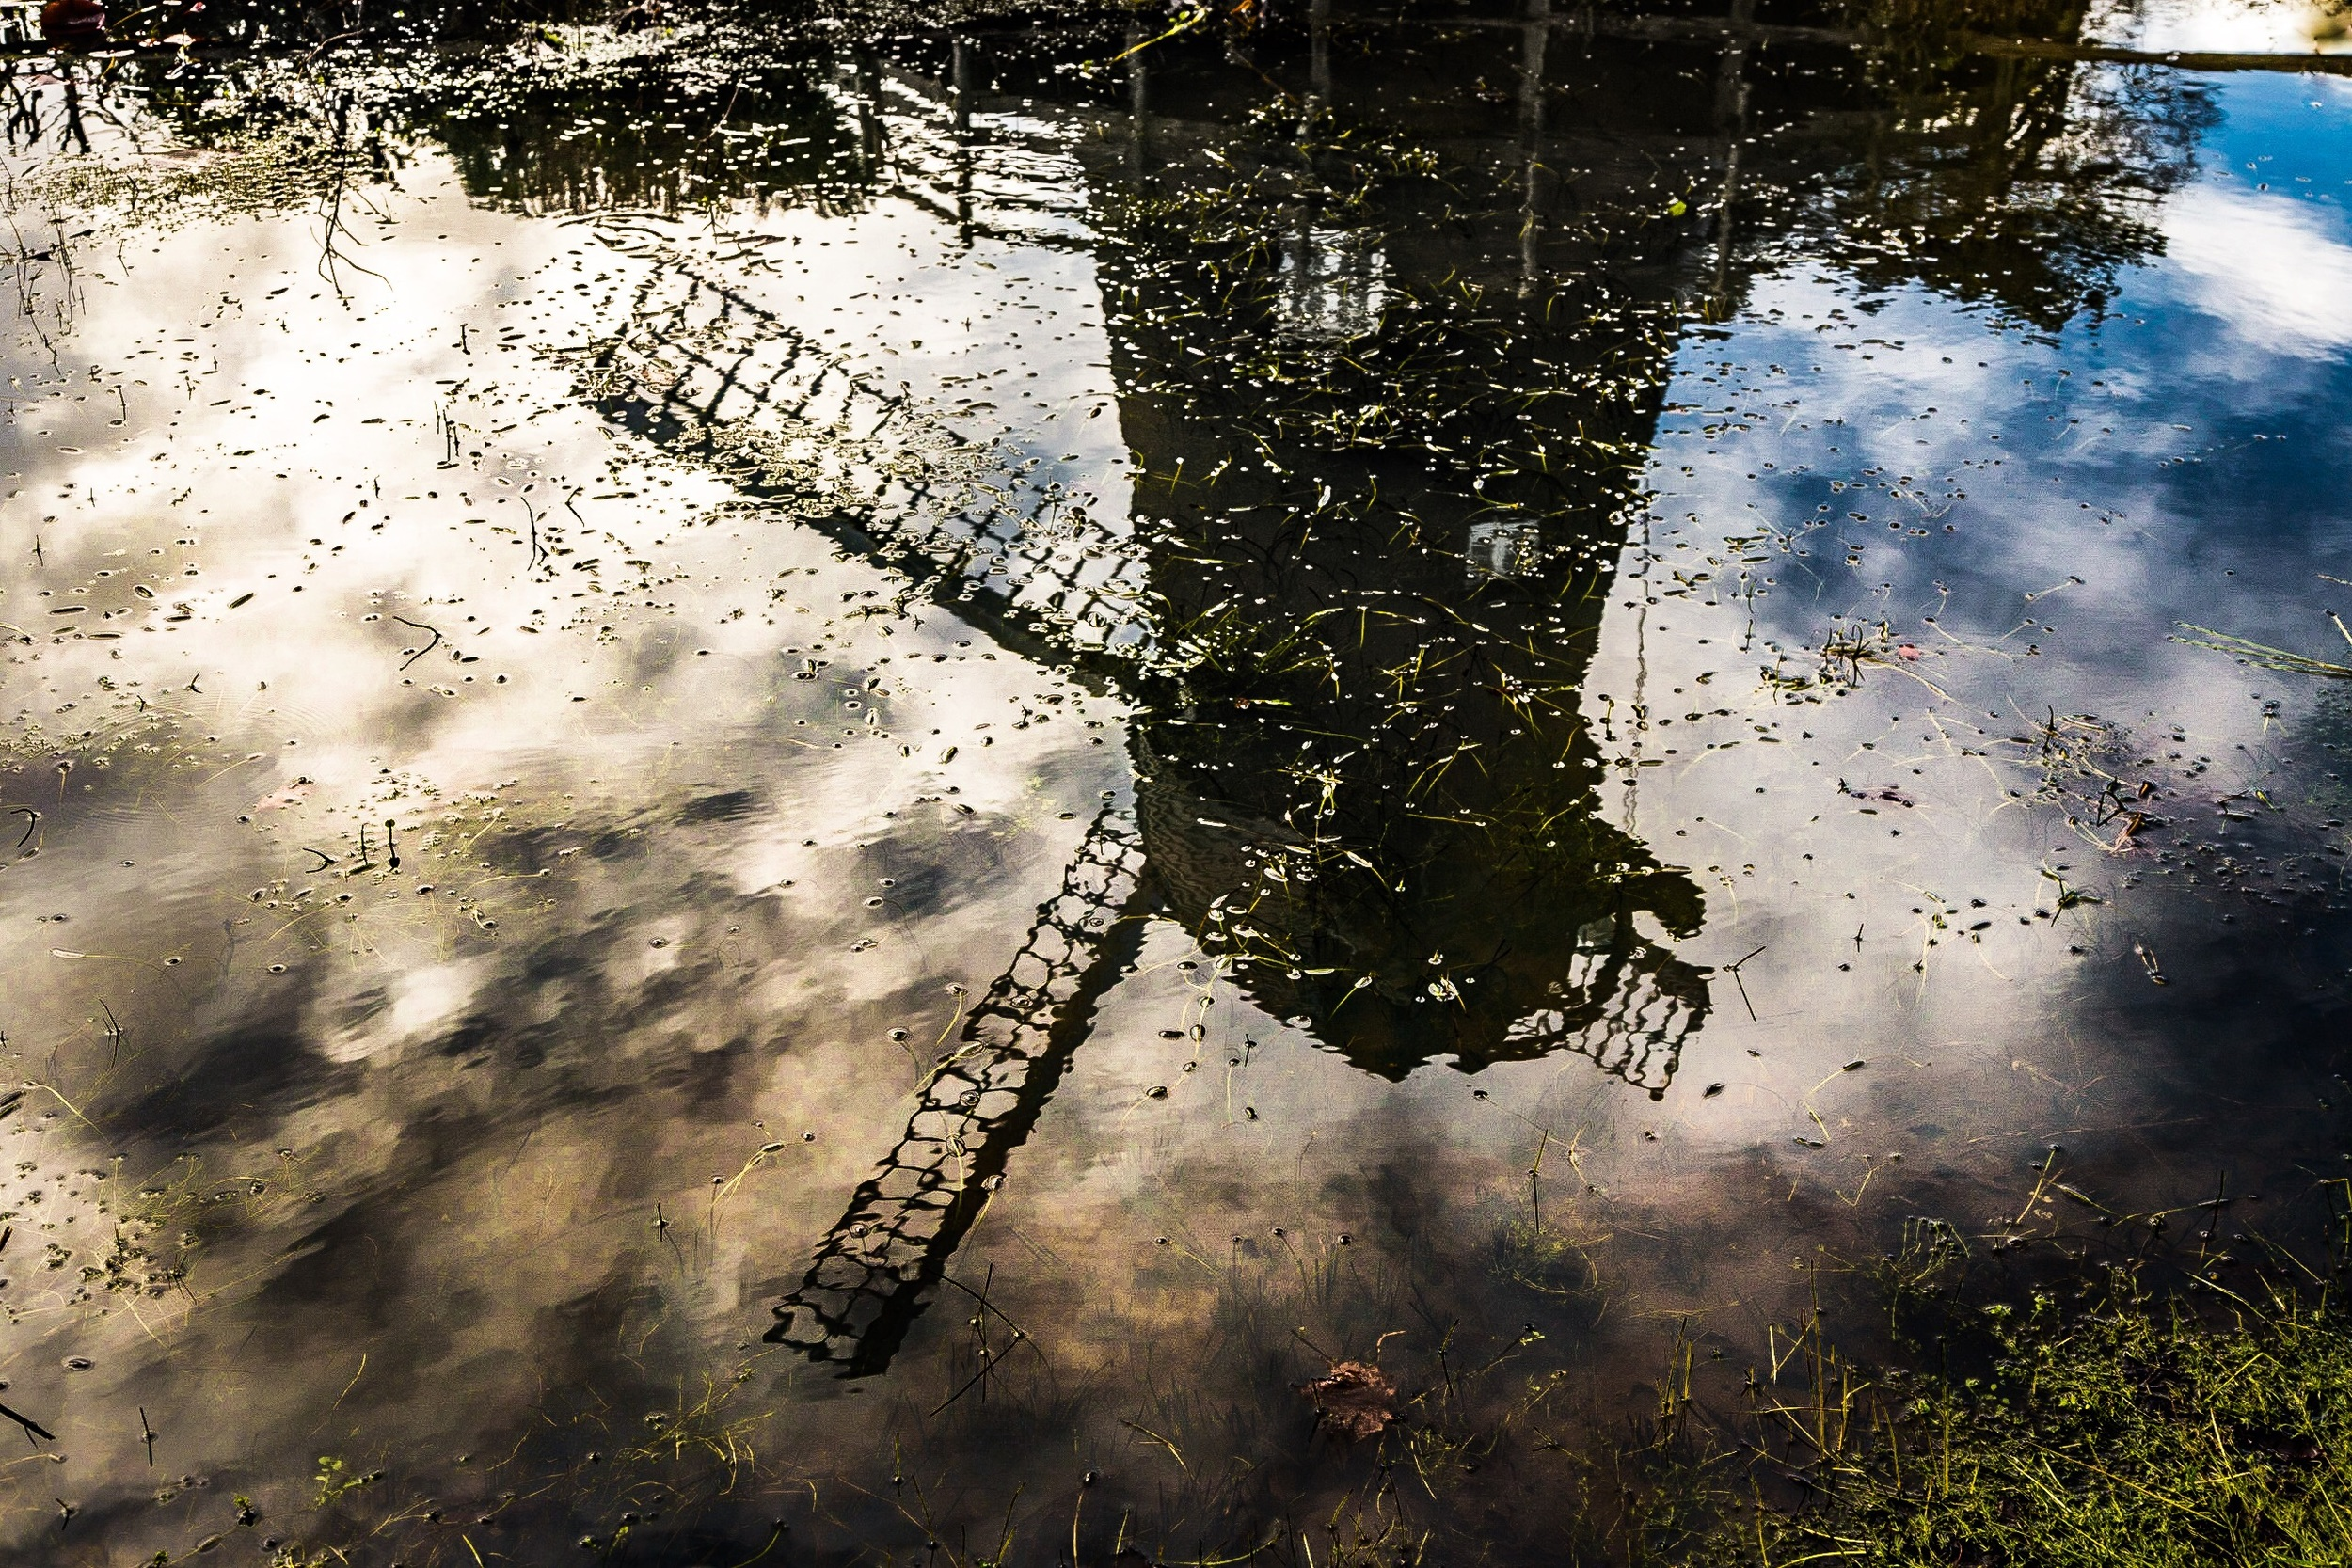 Picture of the reflection of a windmill, Bursledon, Hampshire